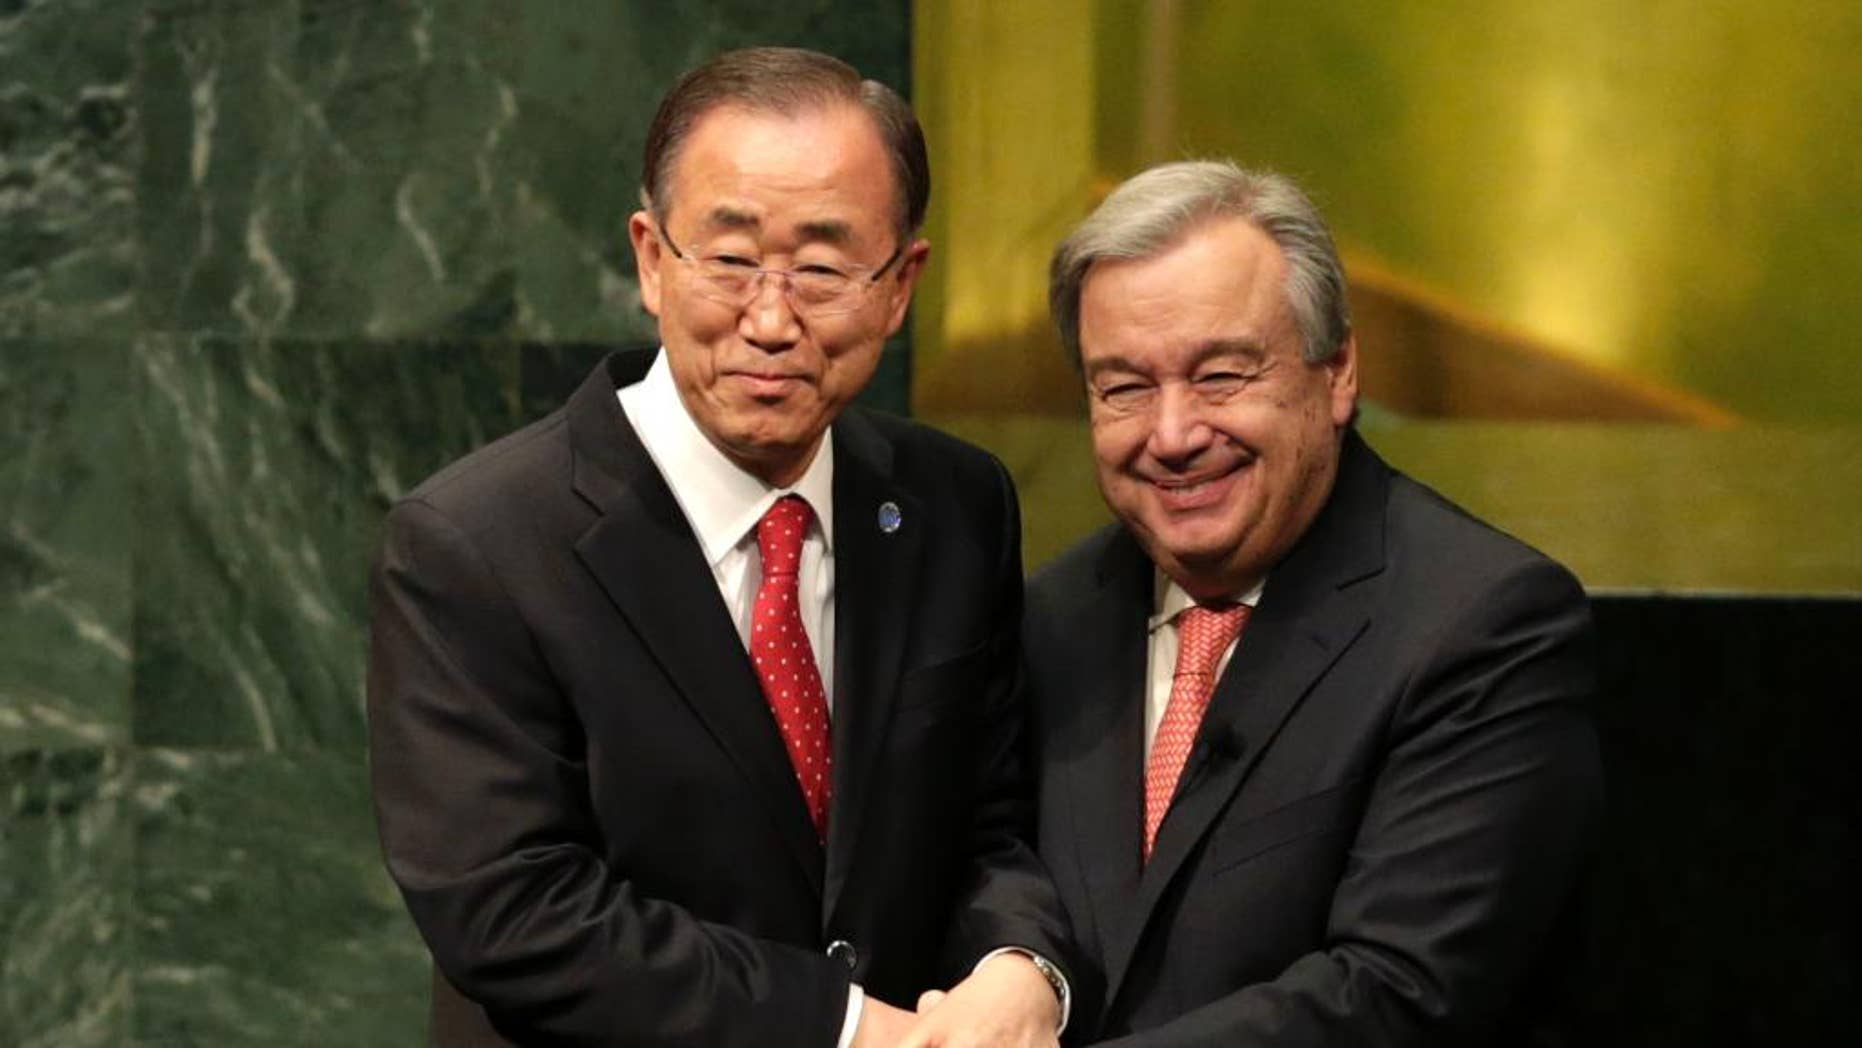 Current Secretary-General Ban Ki-moon, left, clasps hands with U.N. Secretary-General designate Antonio Guterres after Guterres was sworn in at U.N. headquarters, Monday, Dec. 12, 2016. (AP Photo/Seth Wenig)